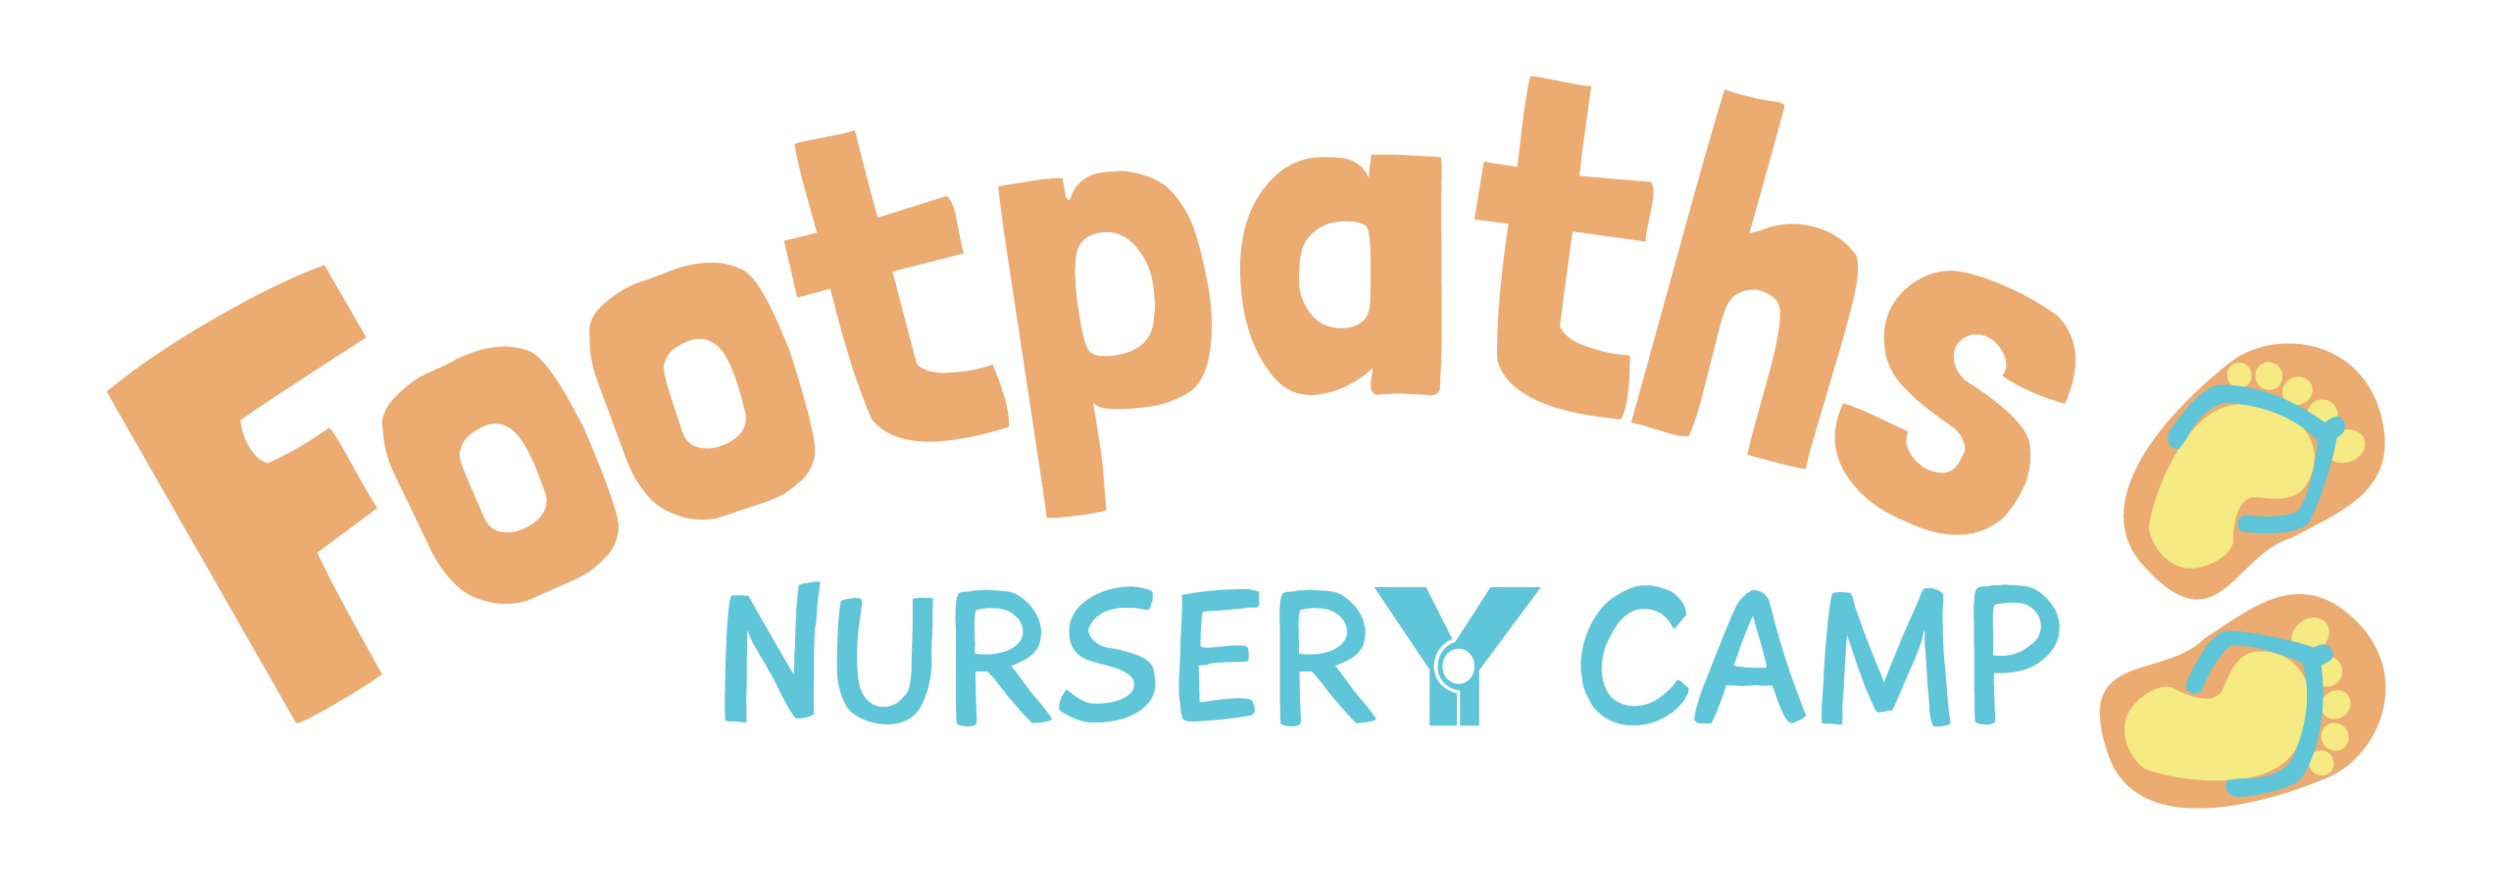 Footpaths Nursery Camp at the Y